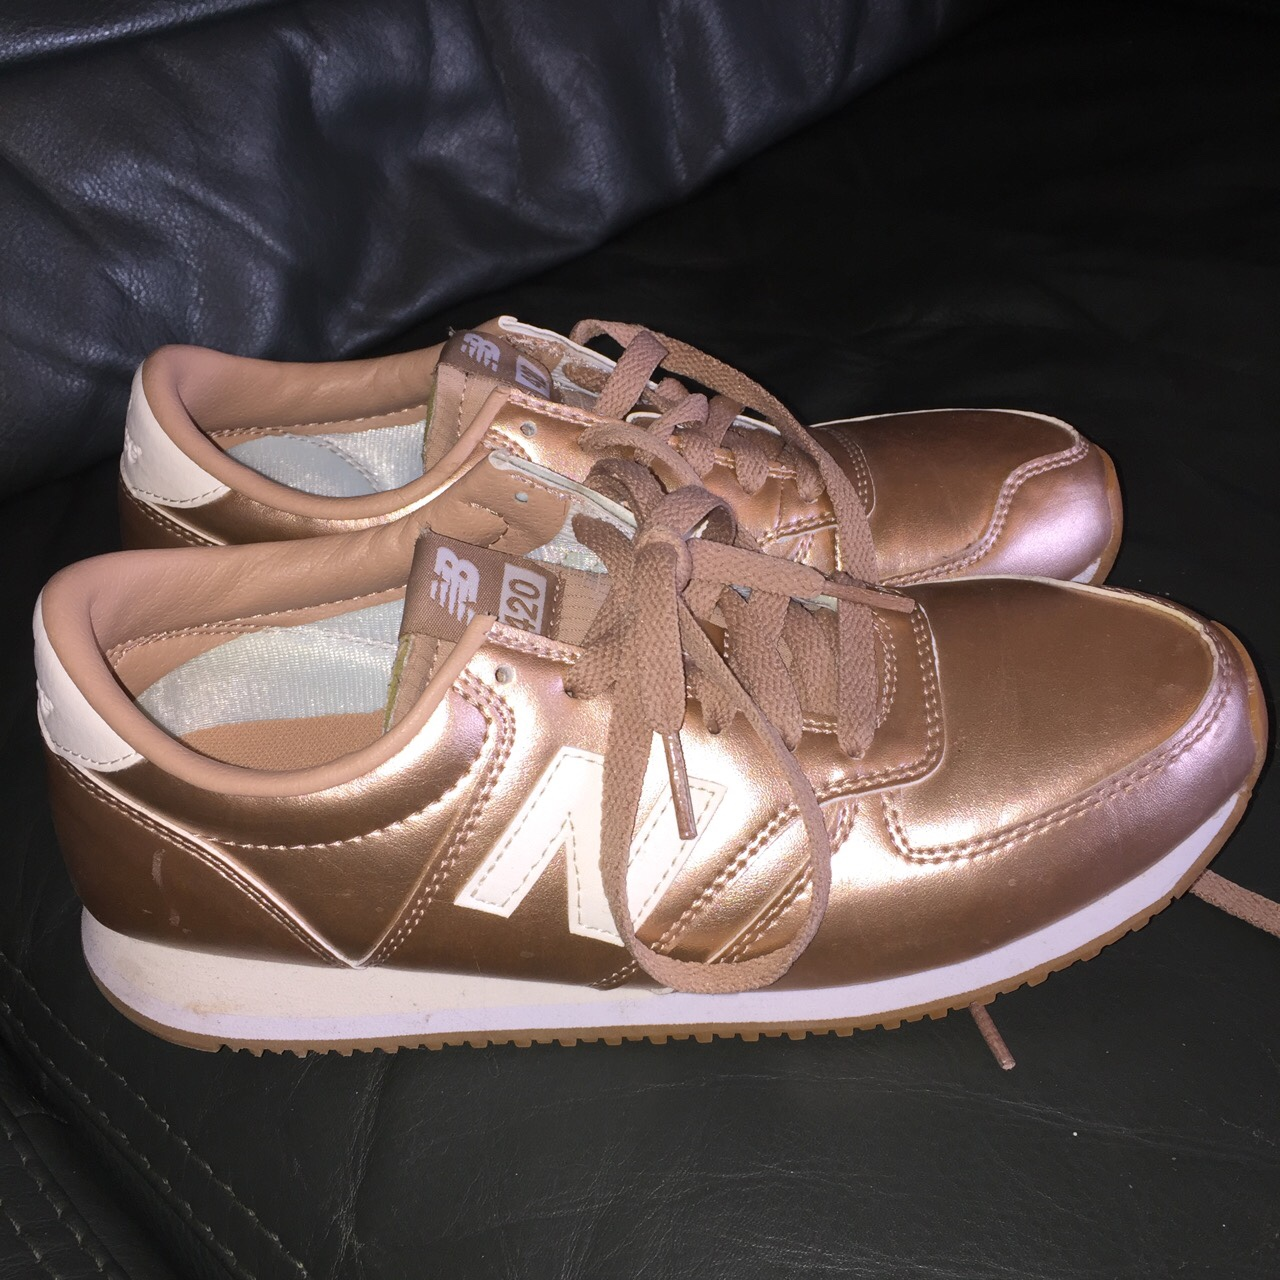 ROSE GOLD METALLIC LOOK NEW BALANCE 420. They are